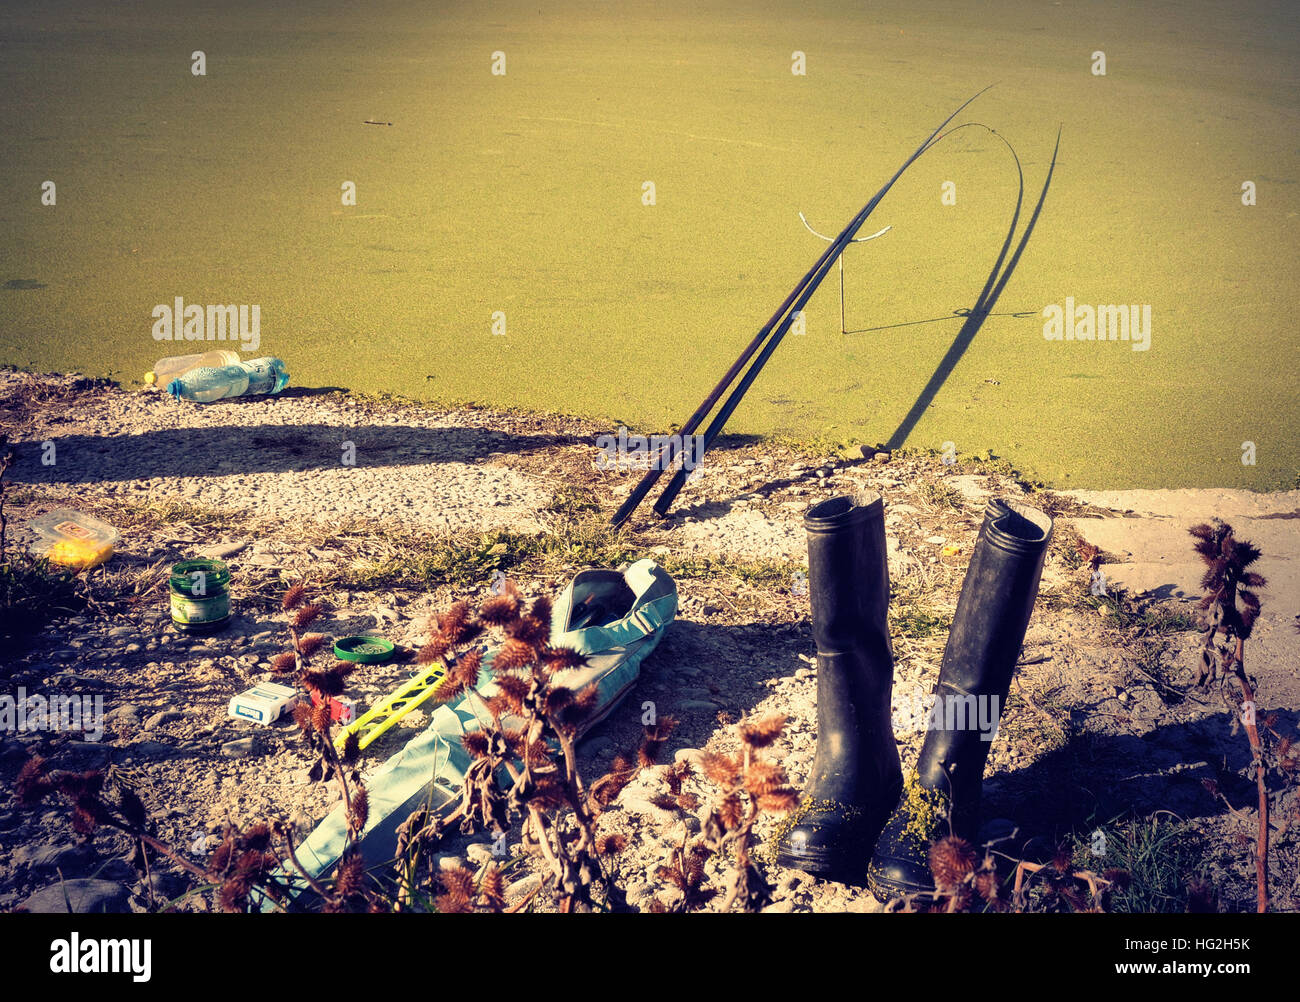 the accessories of the fisherman are on shore of a lake covered with moss but the fisherman himself is missing. - Stock Image